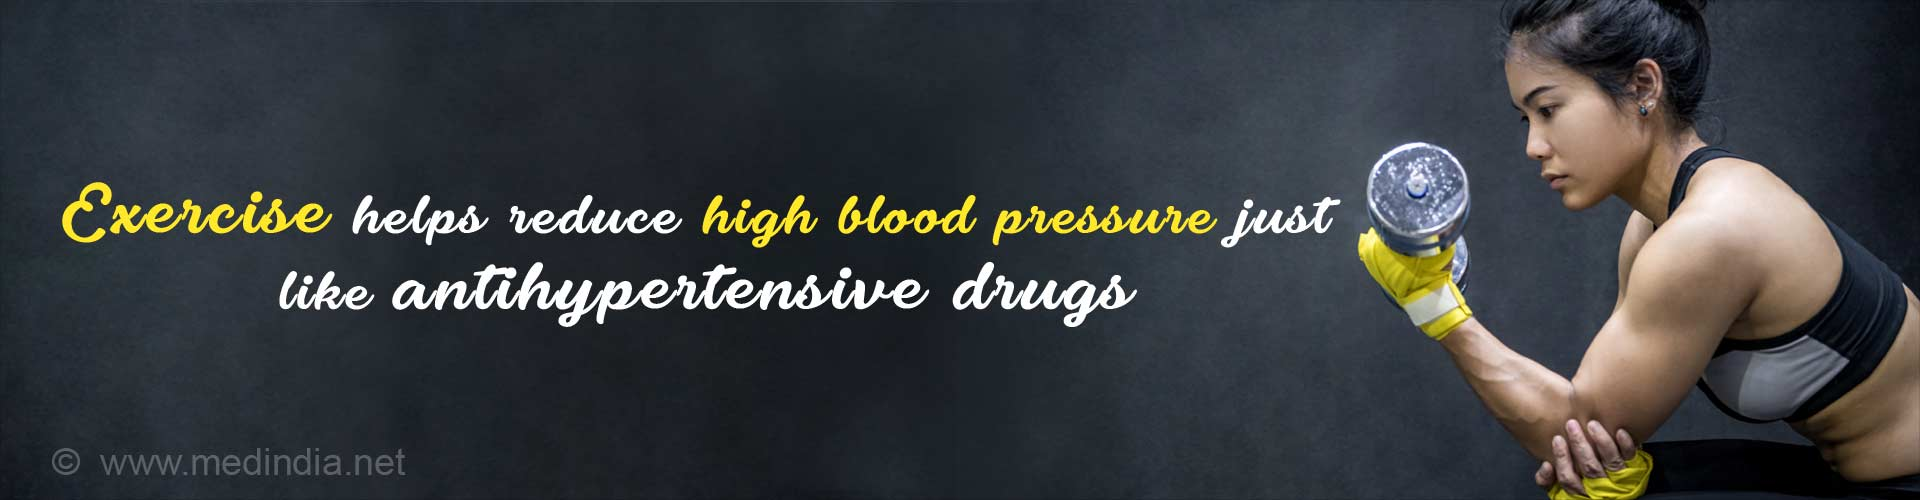 Exercise Could be as Effective as Drug Intervention for Lowering High Blood Pressure